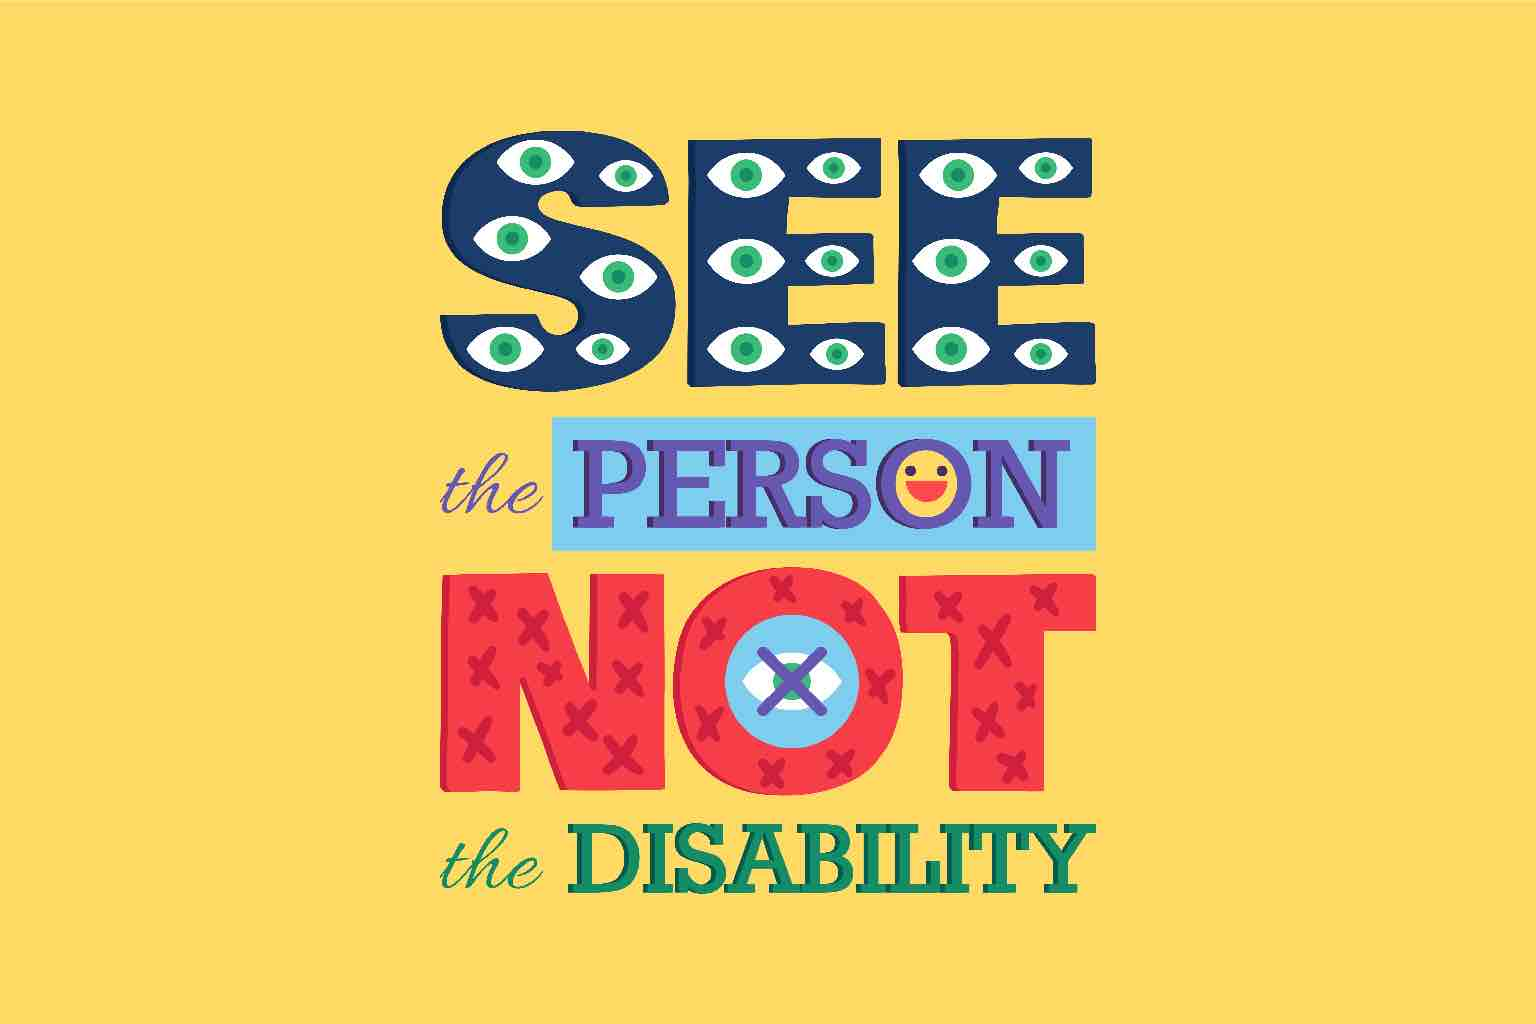 """The words """"SEE THE PERSON NOT THE DISABILITy"""" as vibrant word art"""